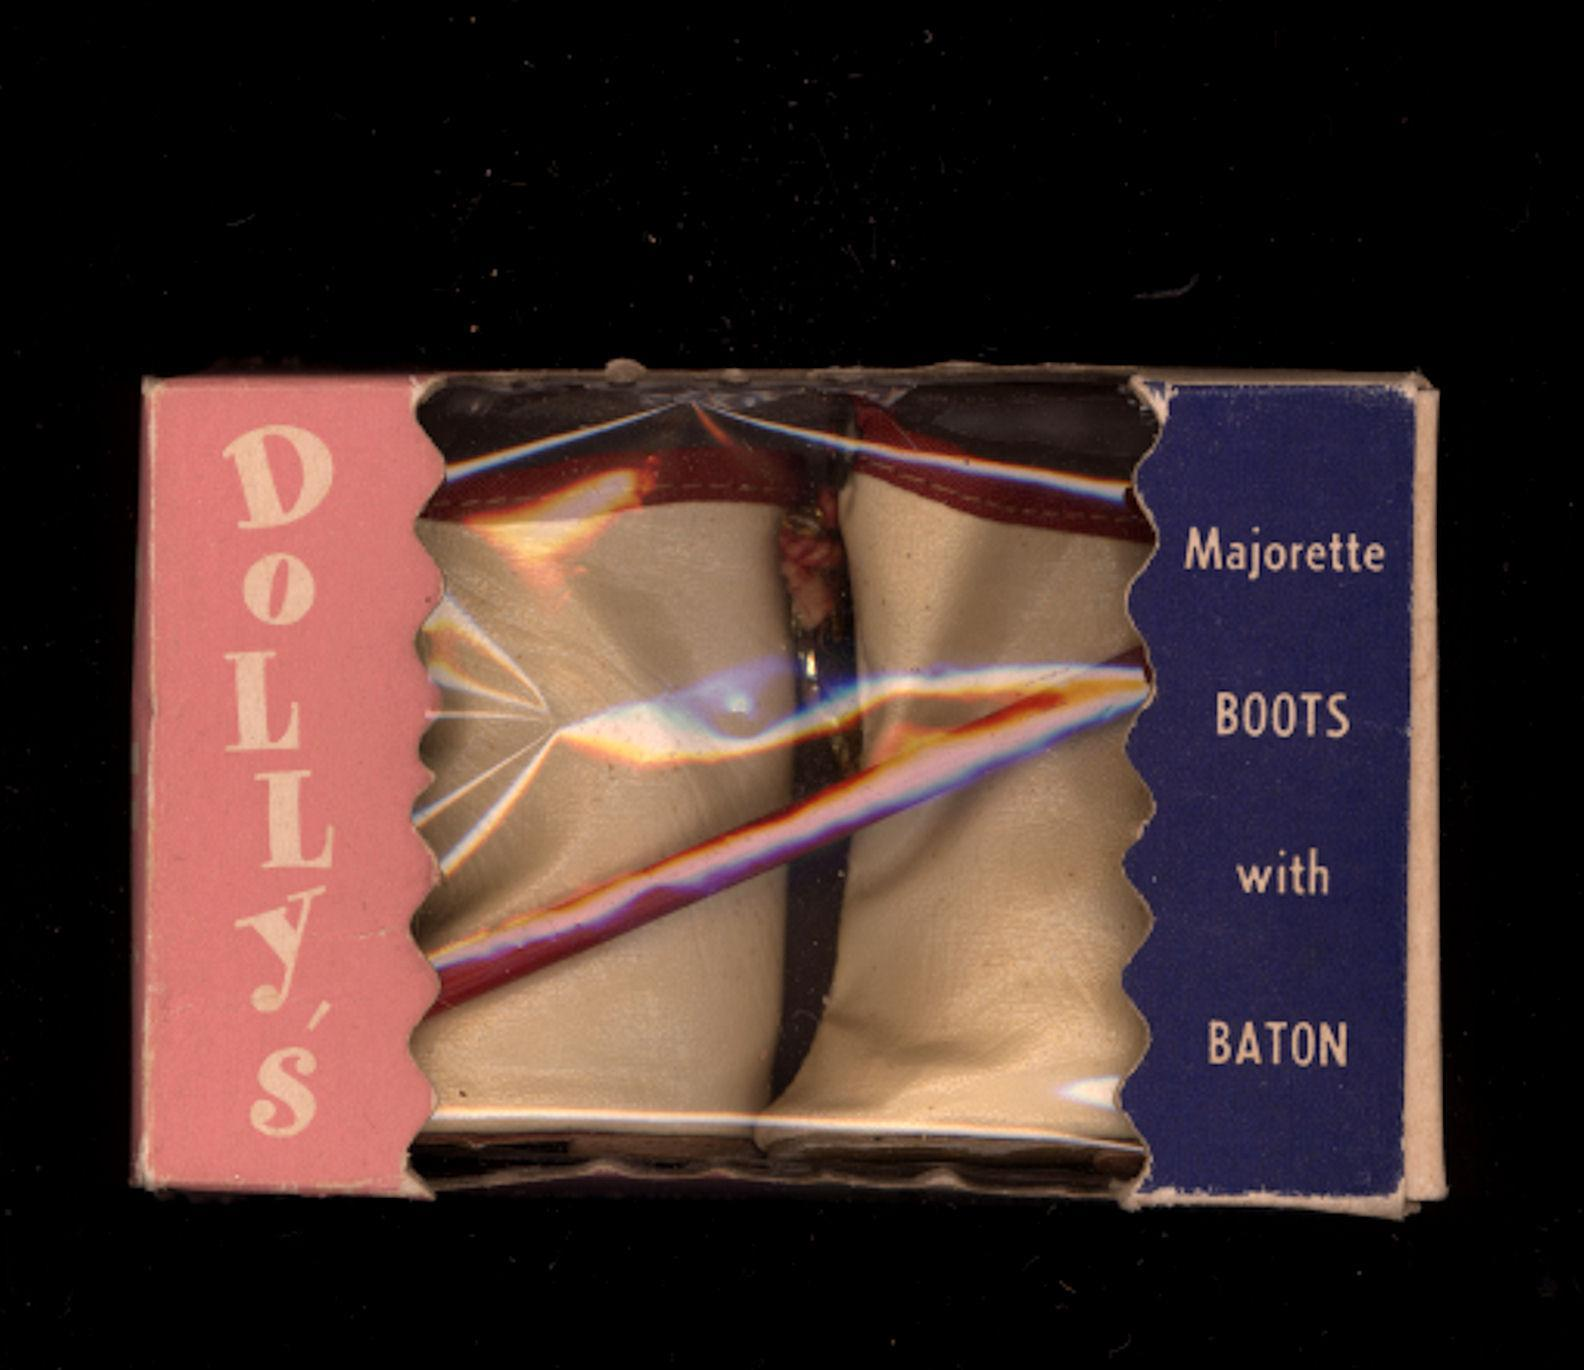 Leatherette Majorette Boots with Baton in Original Box